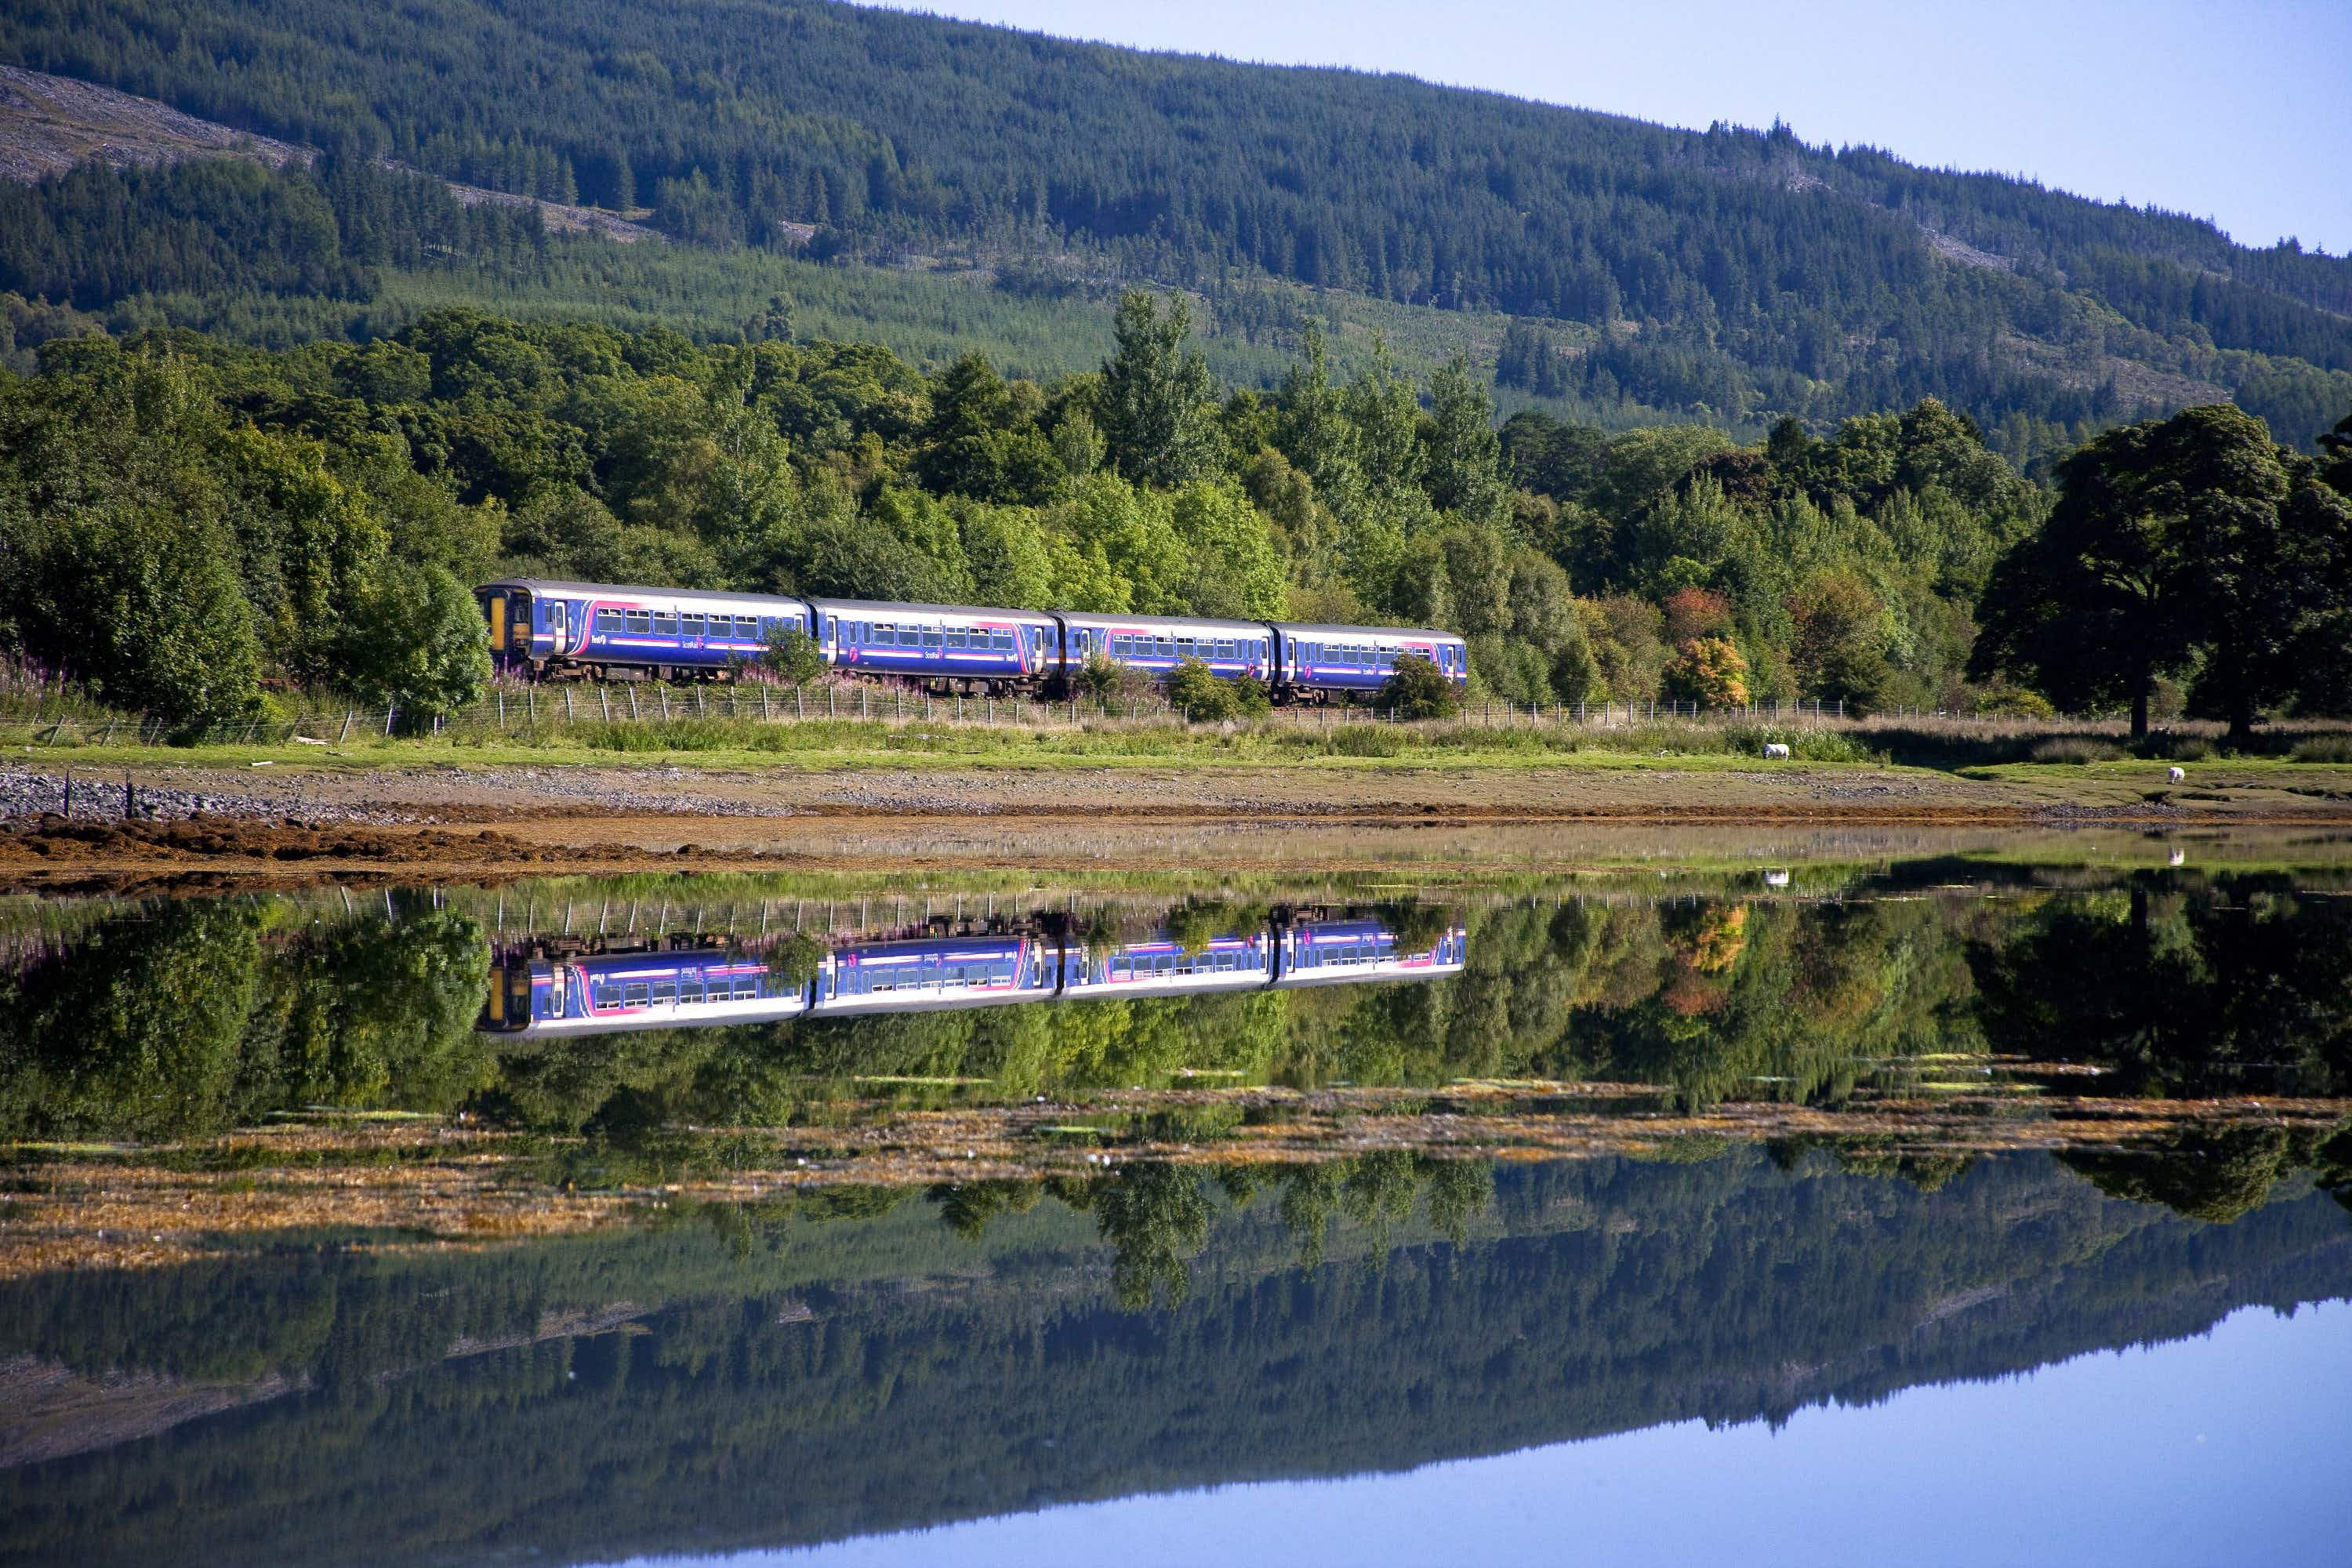 Hurry! You can claim free off-peak train tickets to Scotland's top destinations right now